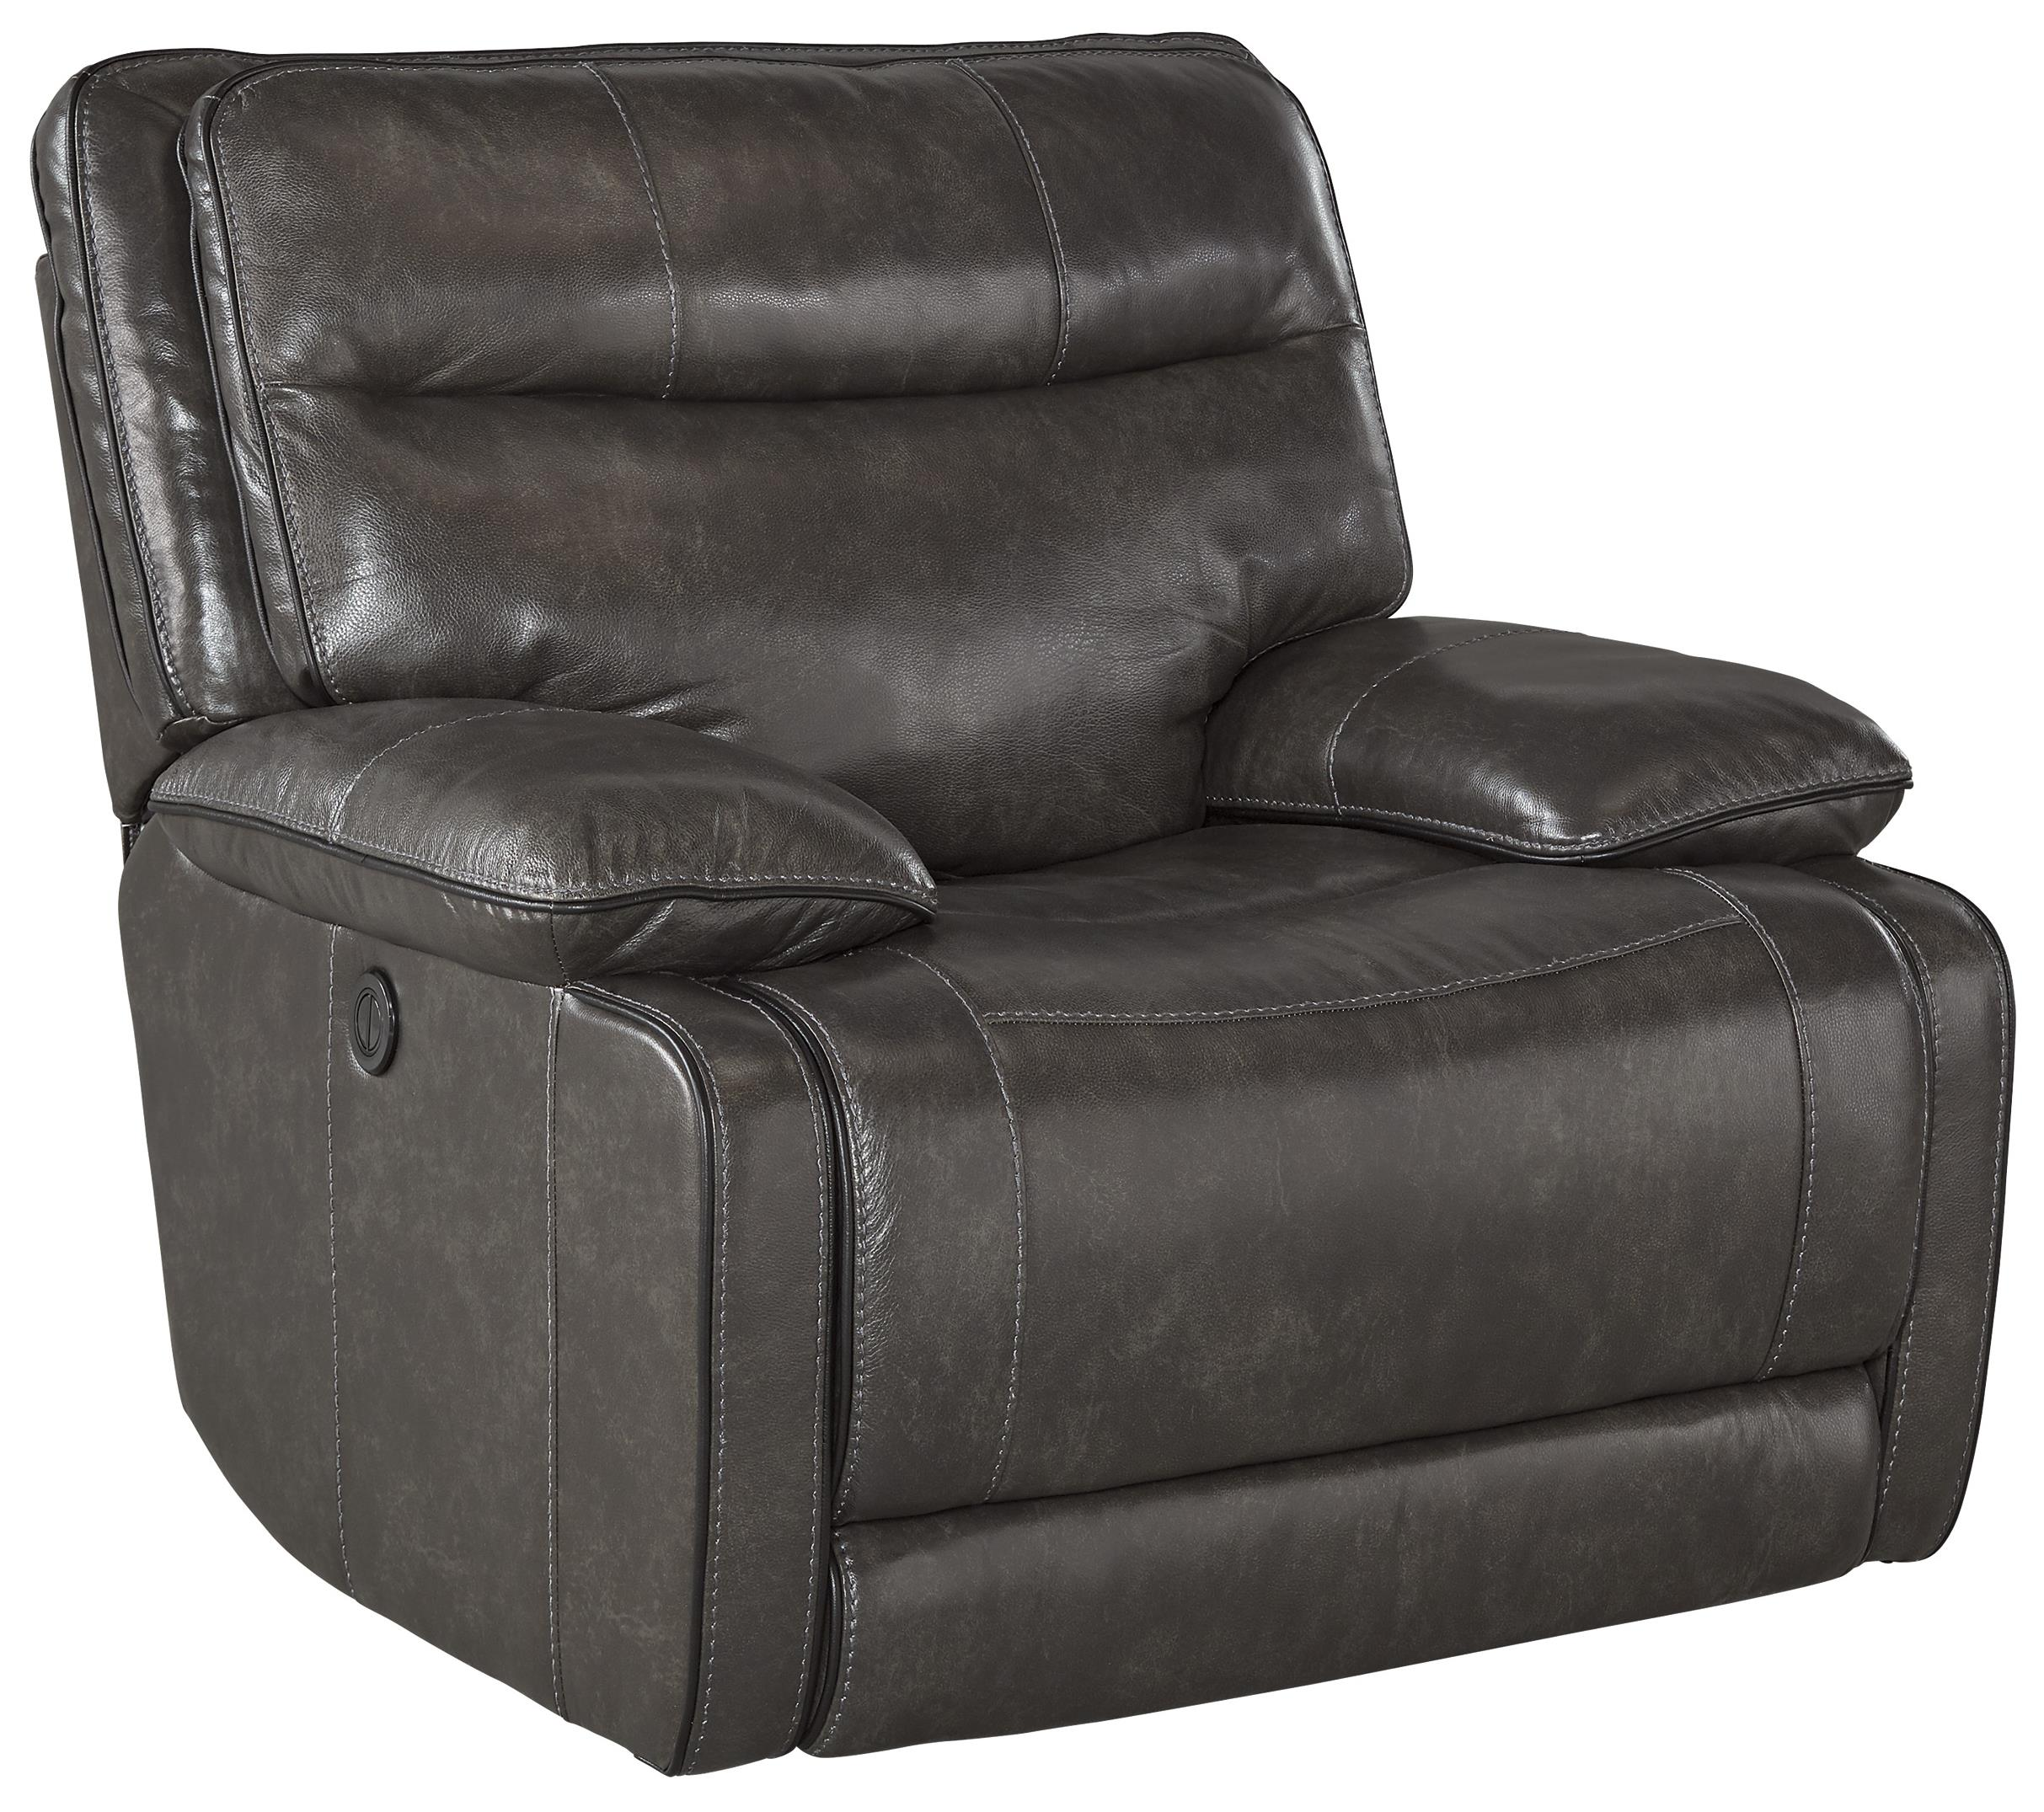 Signature Design by Ashley Palladum Power Rocker Recliner - Item Number: U7260198